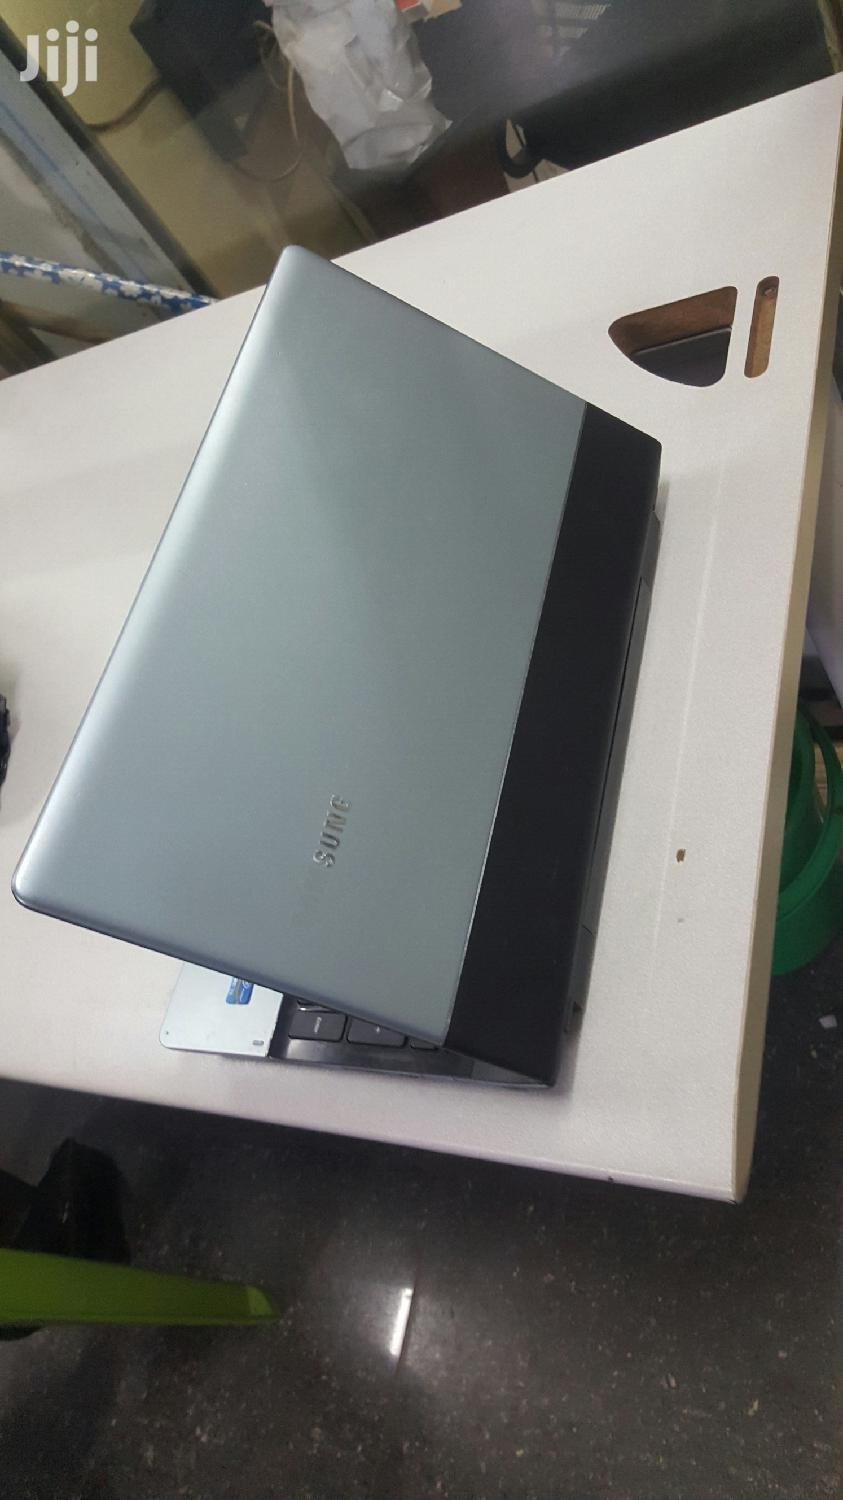 Laptop Samsung NP350E5C 4GB Intel Core i3 HDD 320GB   Laptops & Computers for sale in Kampala, Central Region, Uganda